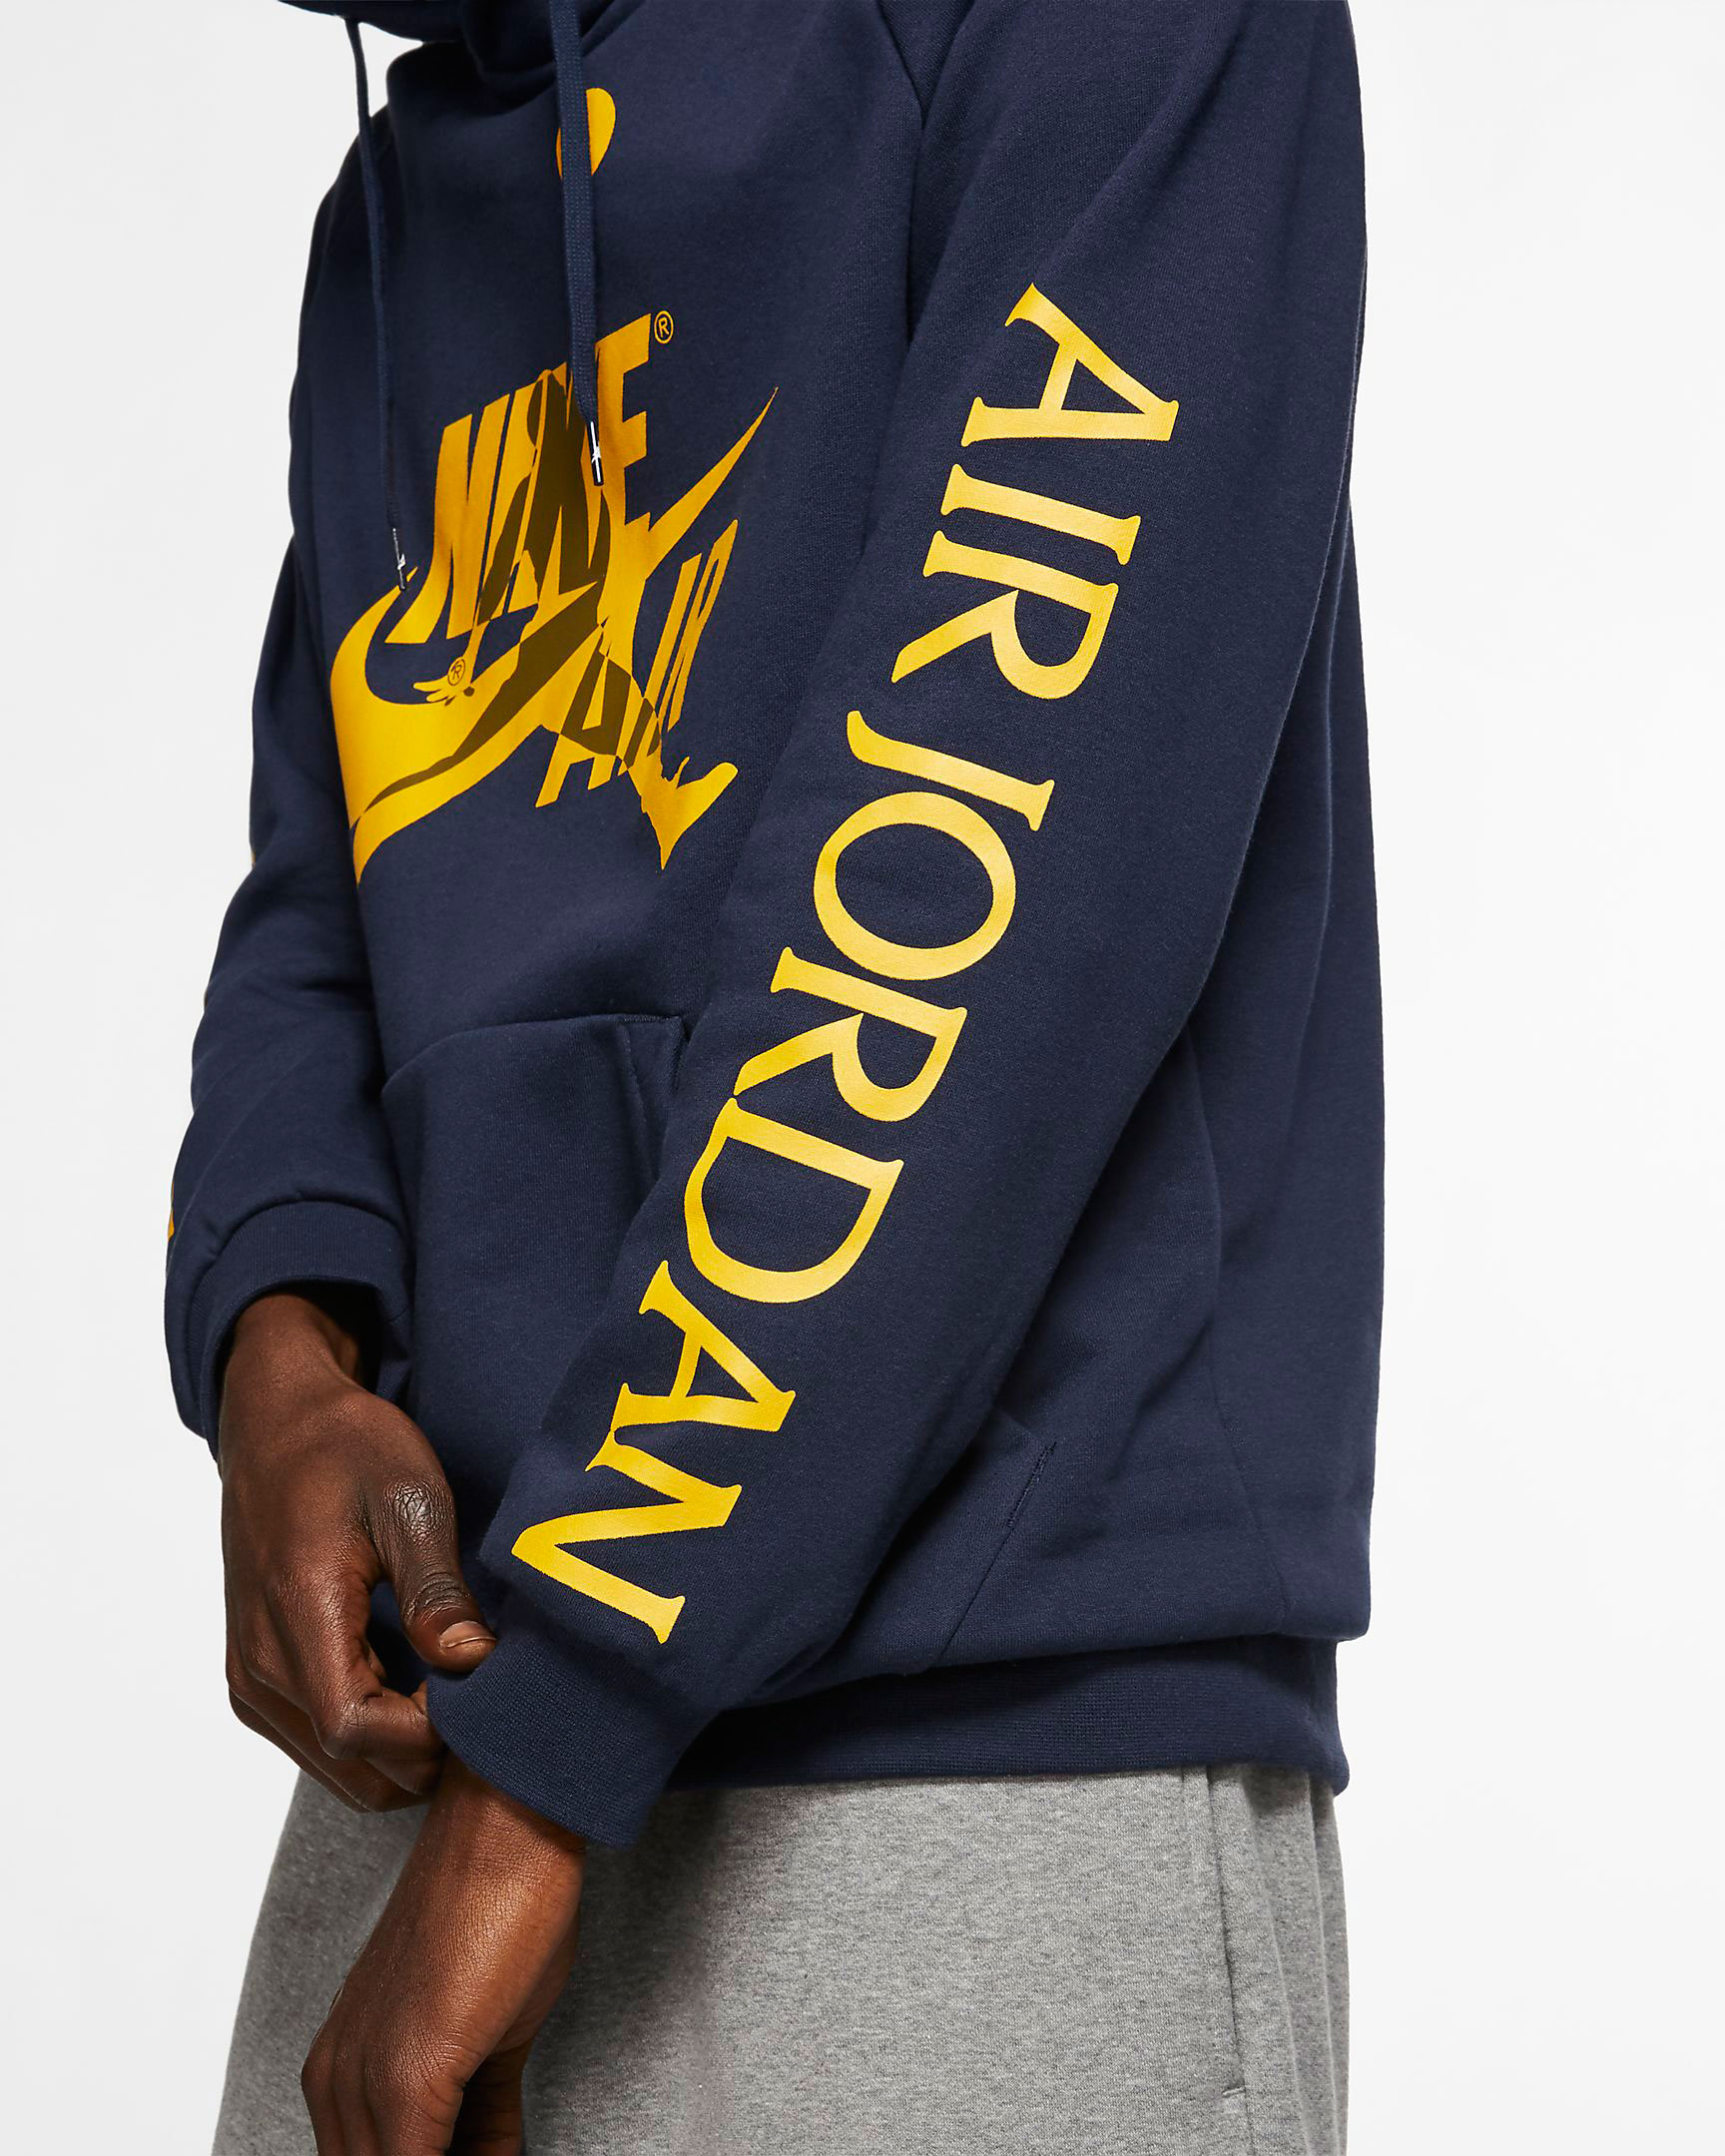 jordan-5-michigan-amarillo-navy-hoodie-match-3